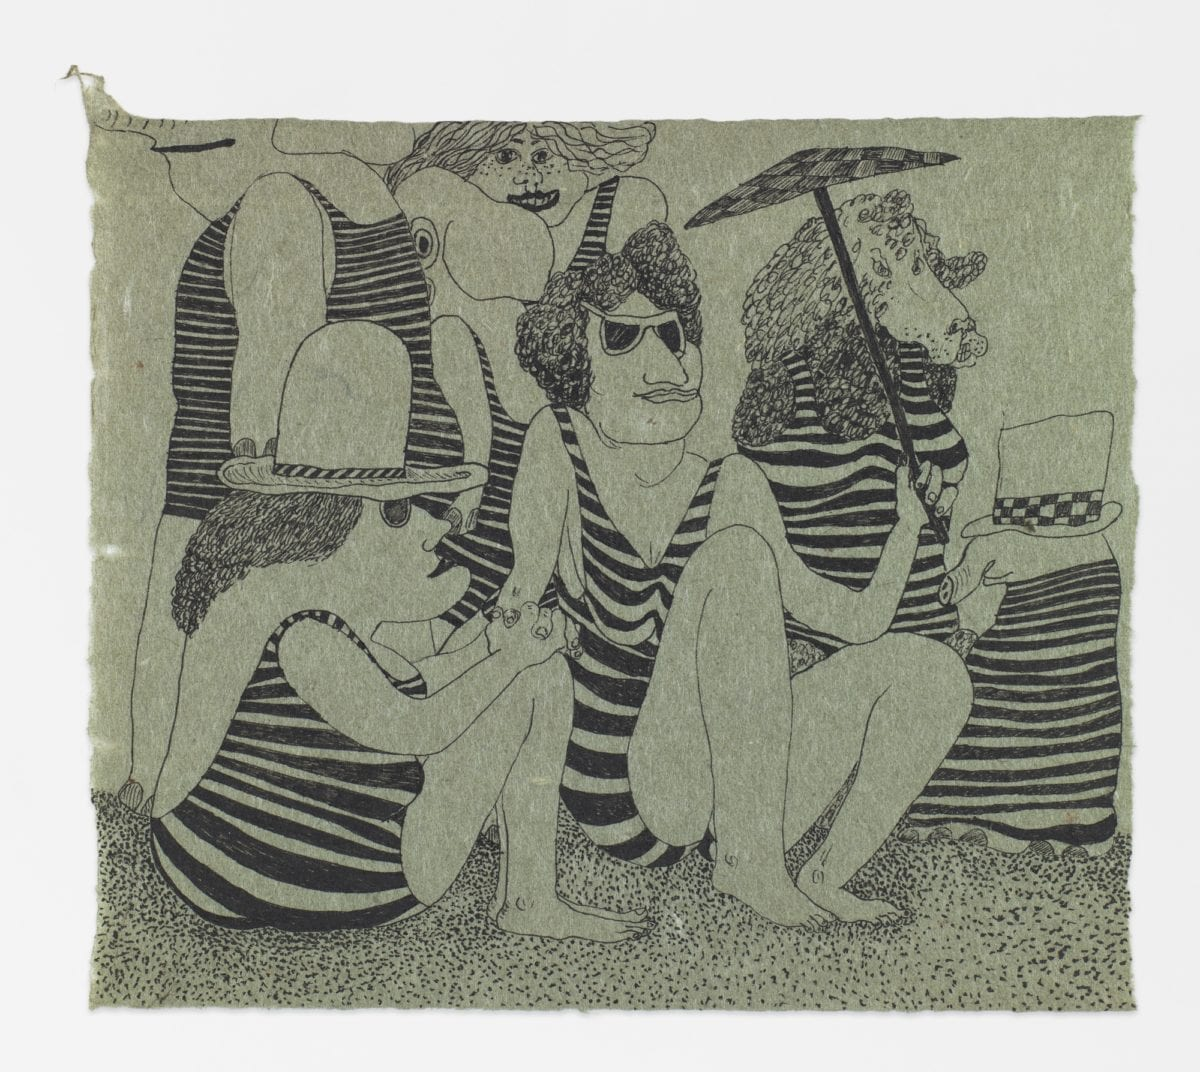 Gladys Nilsson, Rented Bathing Suits, 1965. Courtesy the artist and Garth Greenan Gallery, New York